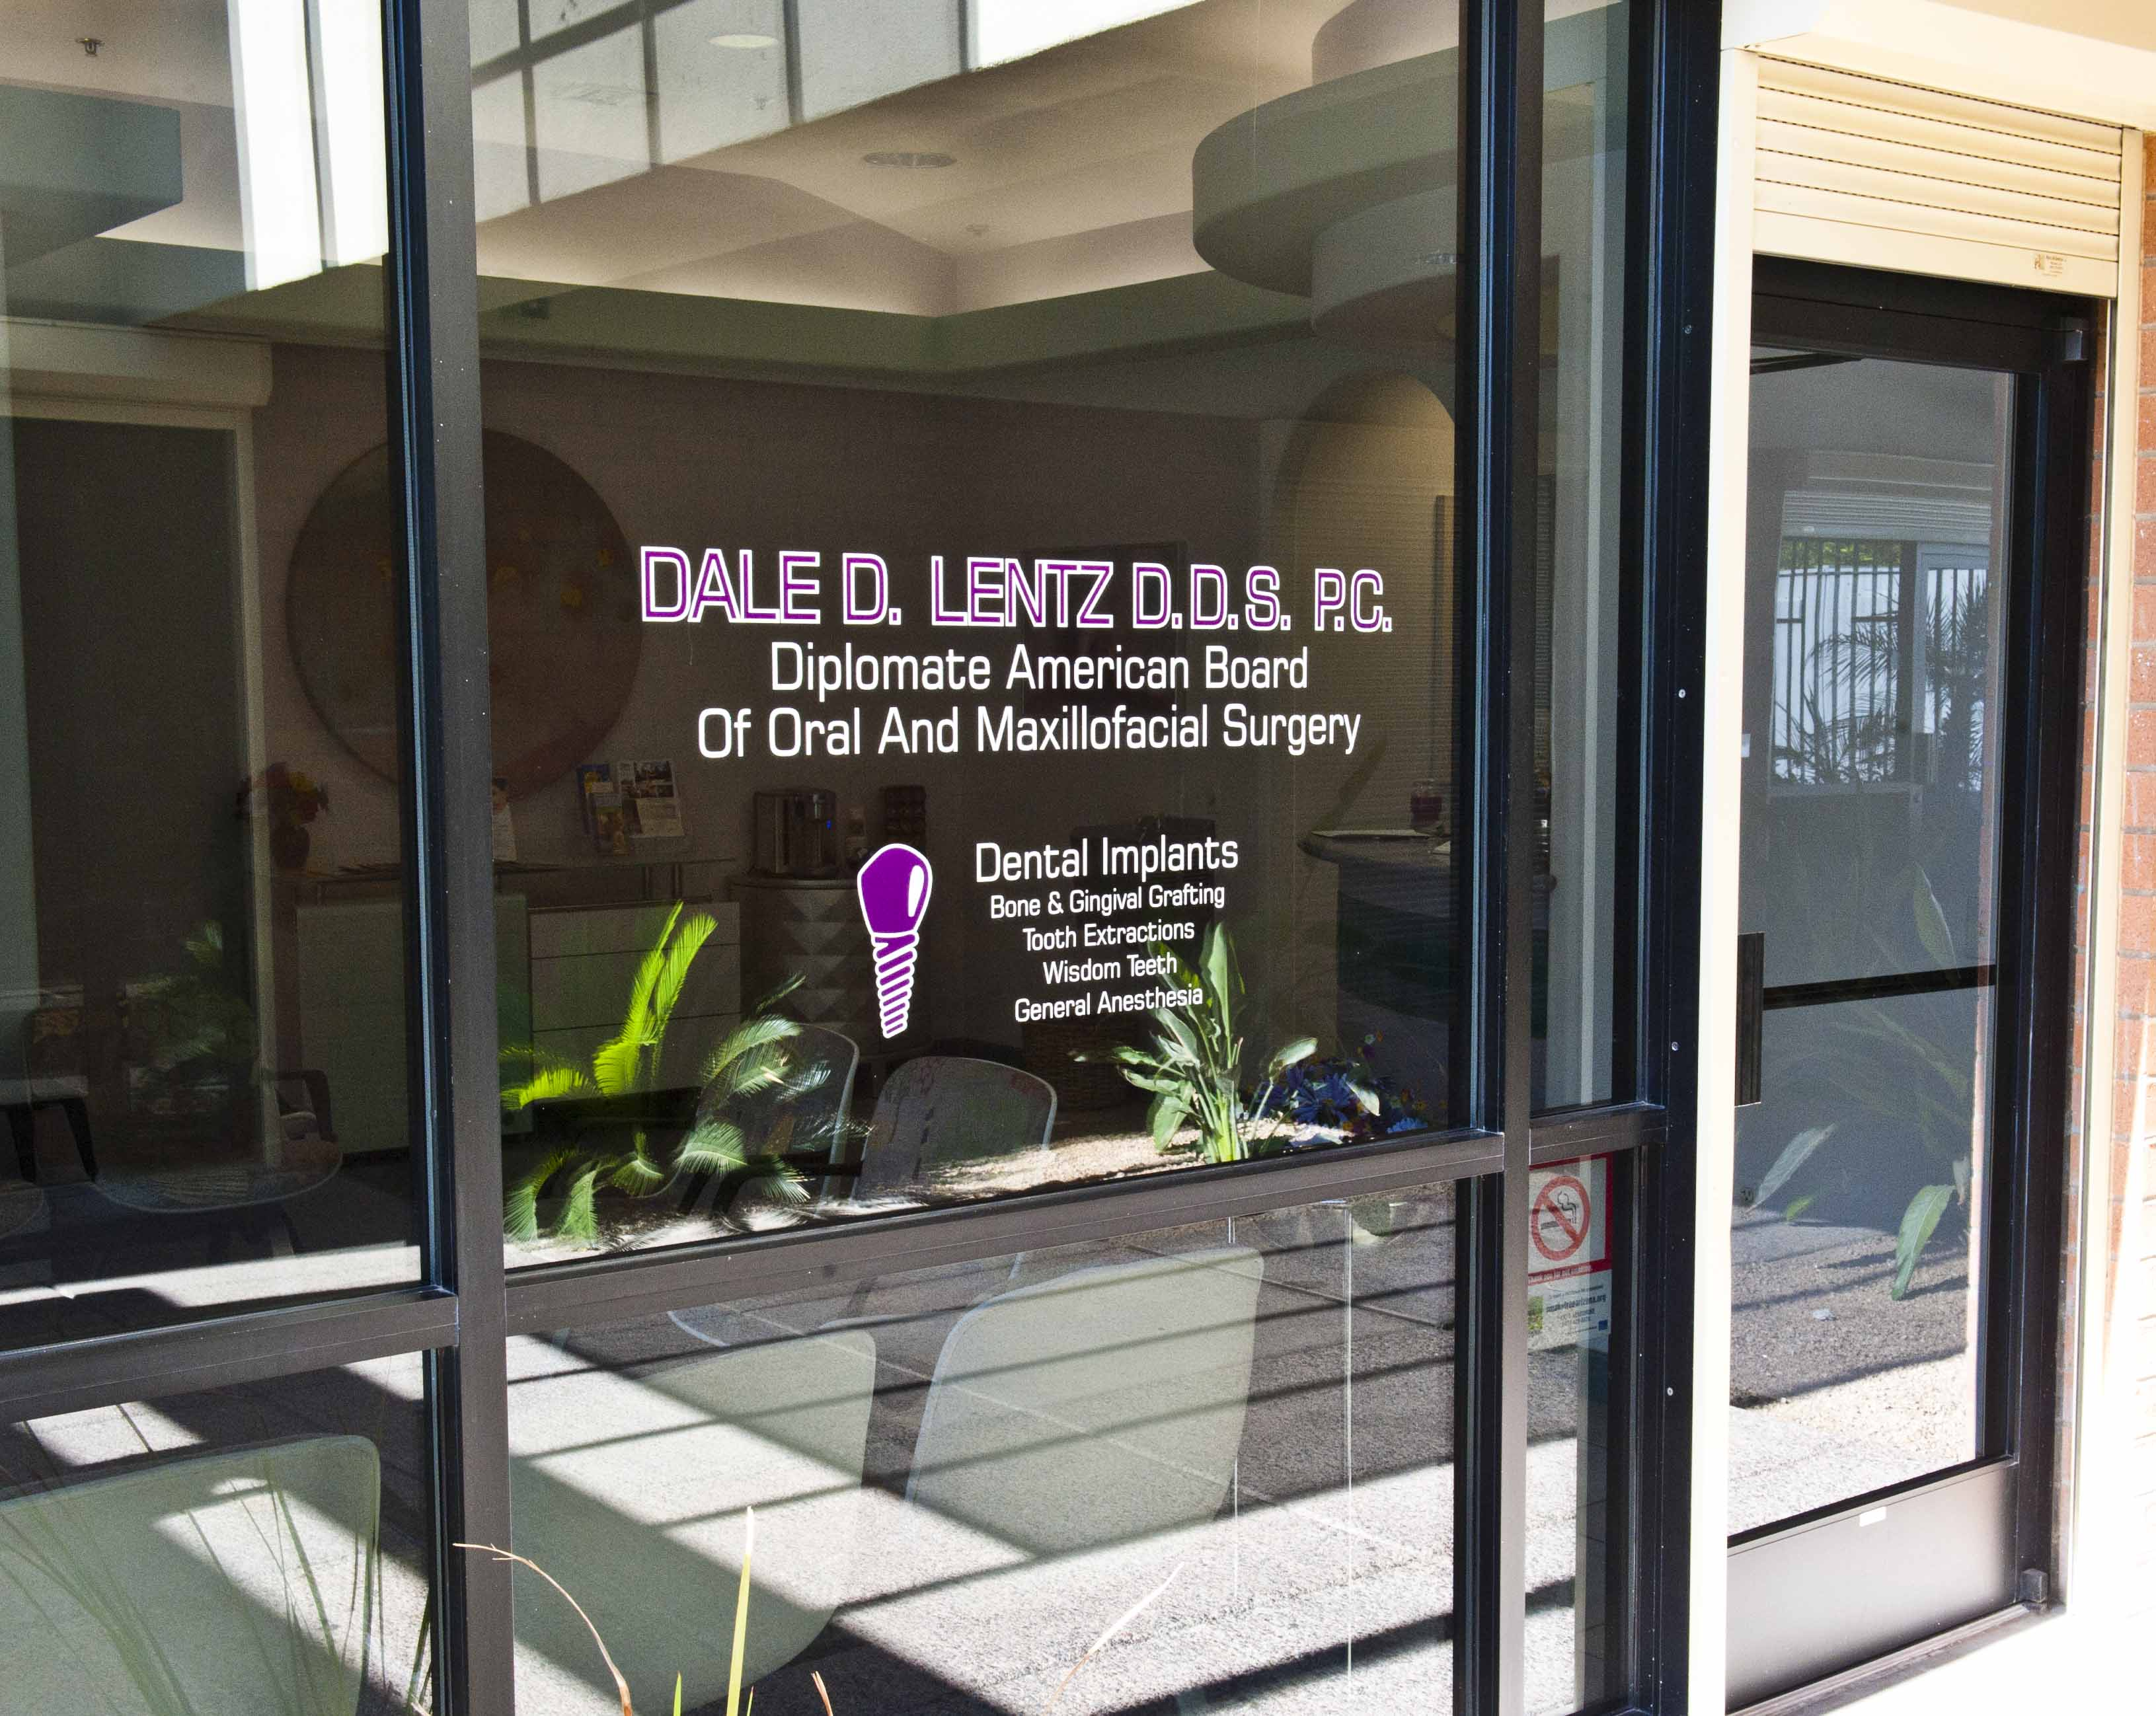 Oral surgeon in Tempe, AZ - Dr. Dale Lentz's office window